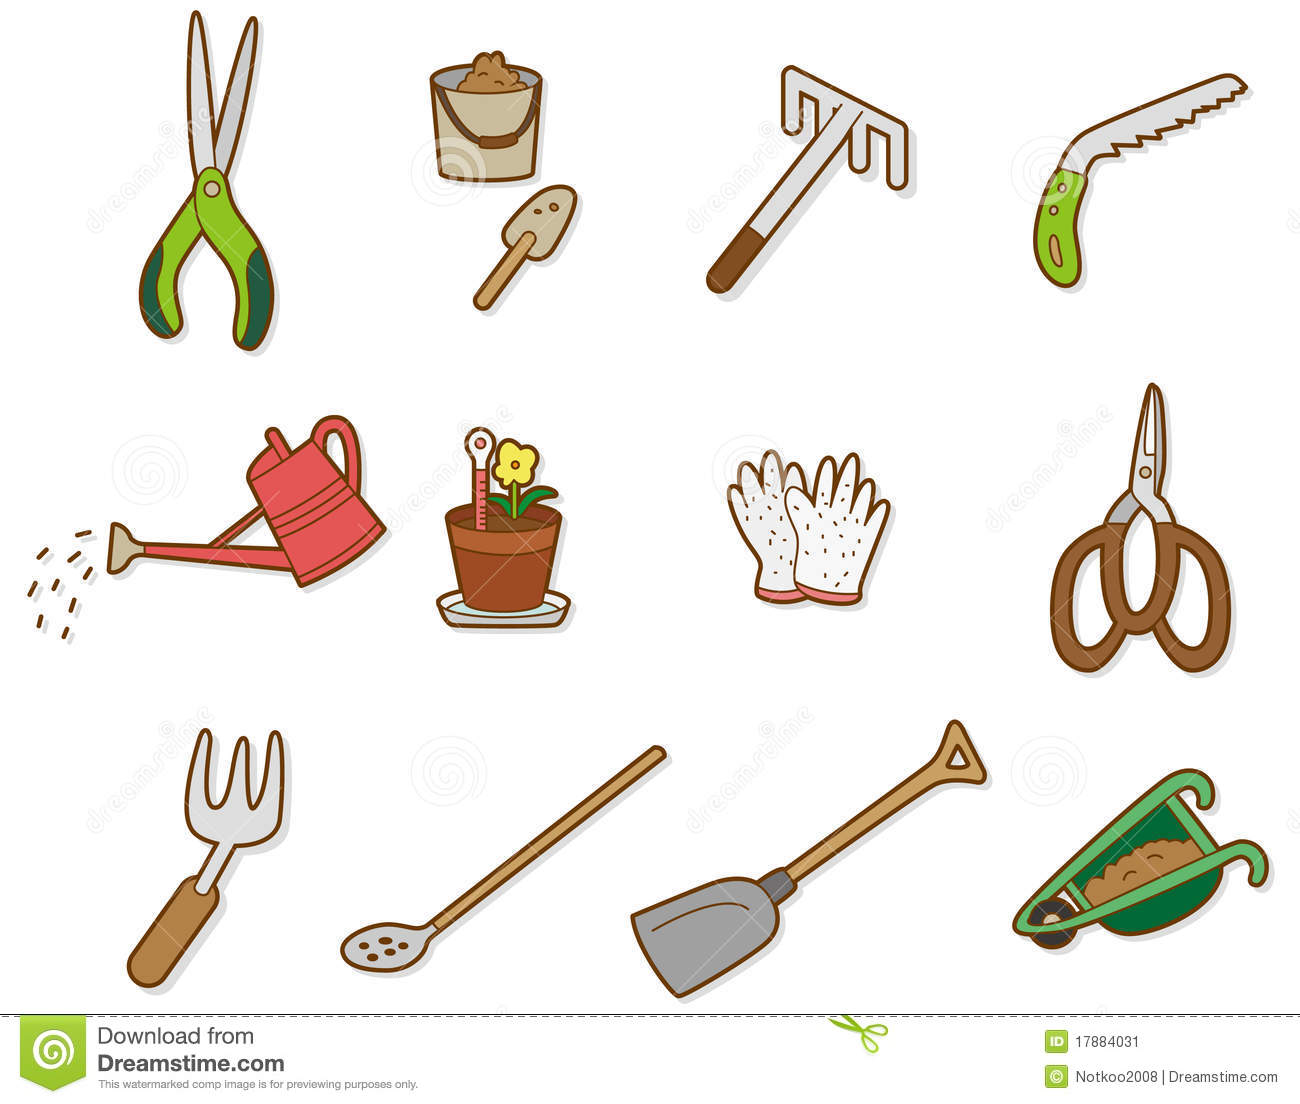 Farmer tools clipart clipart suggest for Gardening tools clipart